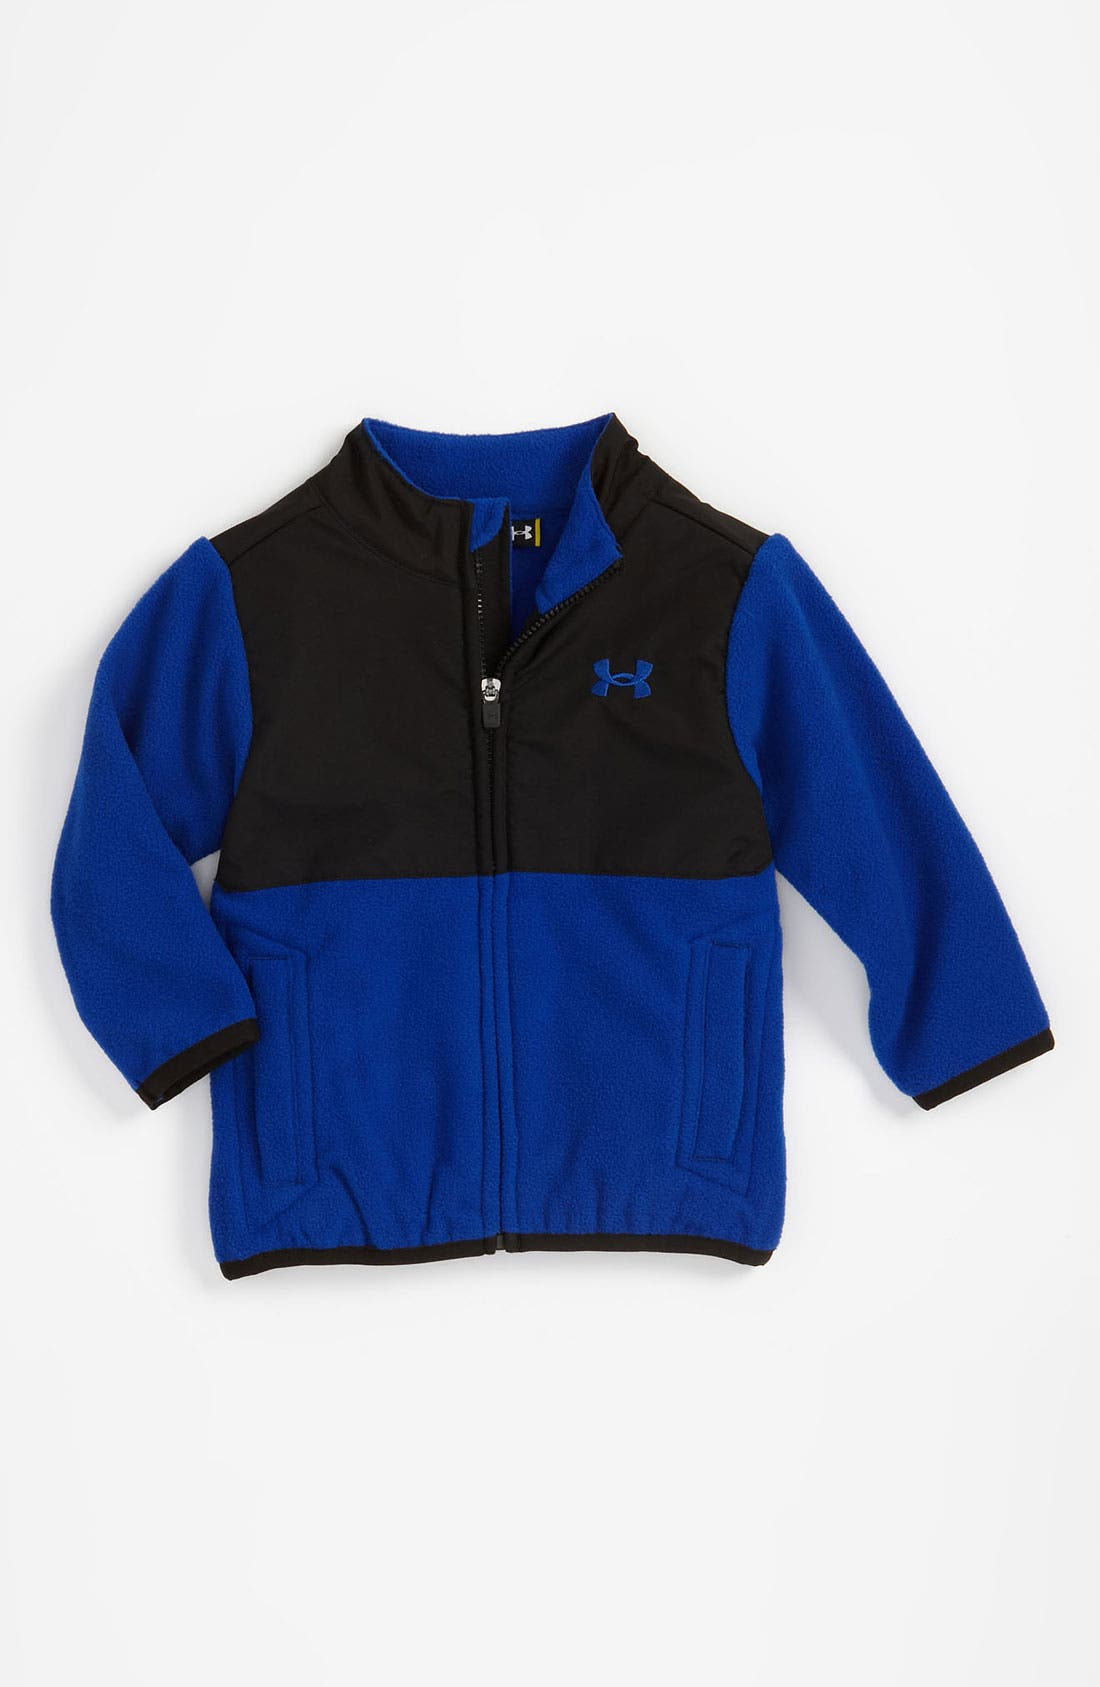 Alternate Image 1 Selected - Under Armour Fleece Jacket (Toddler)